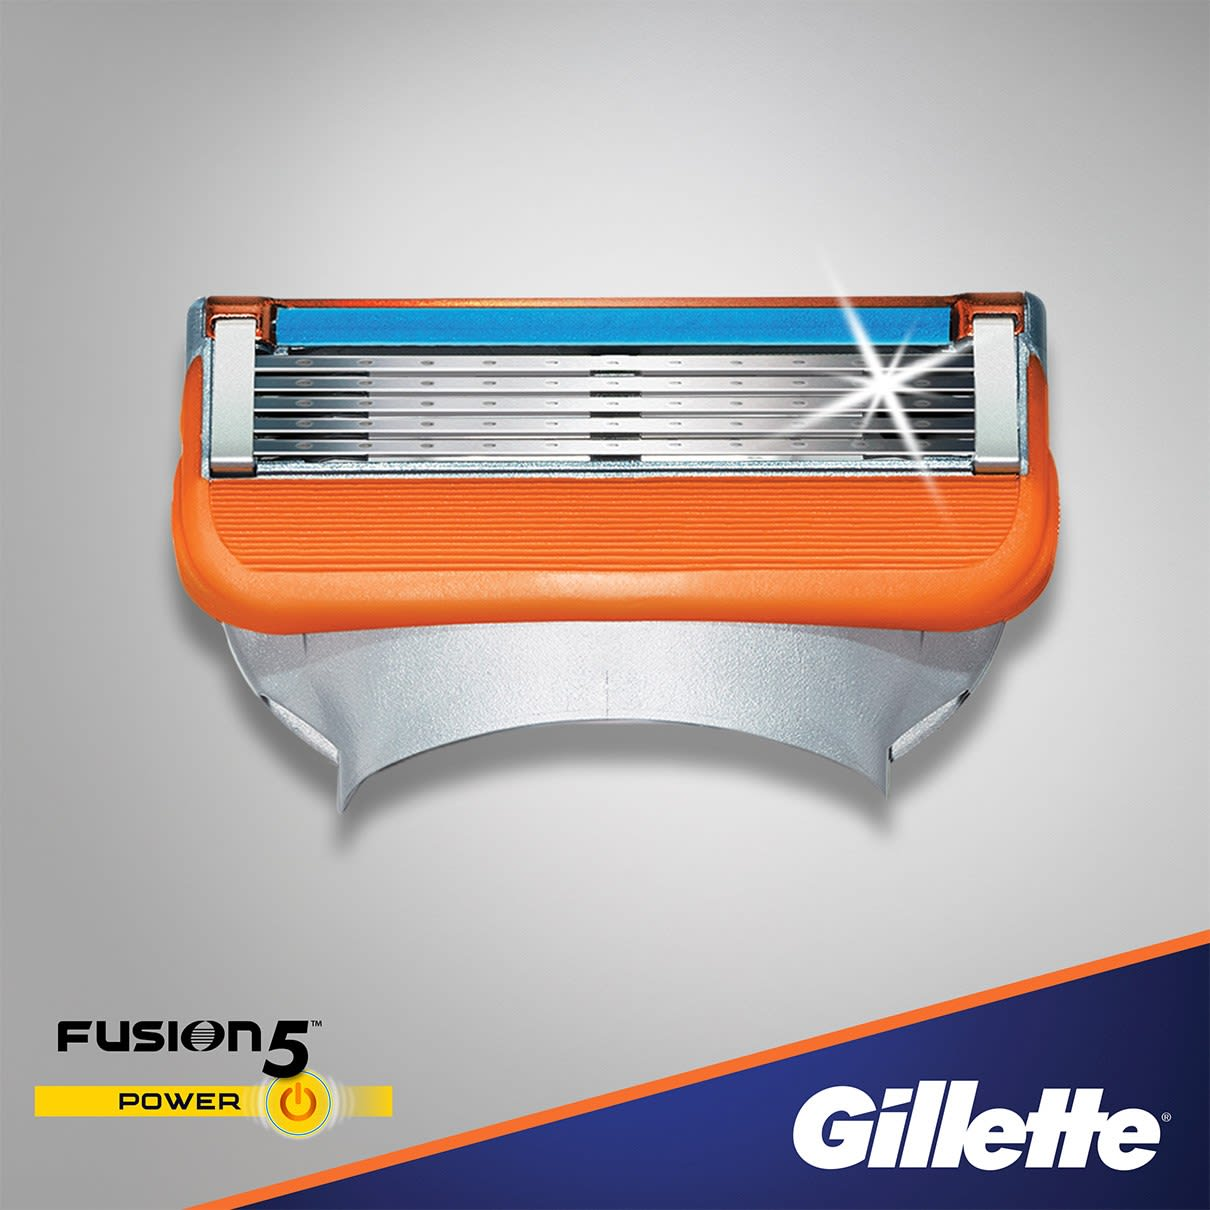 Gillette® Fusion5™ Power Razor Blades